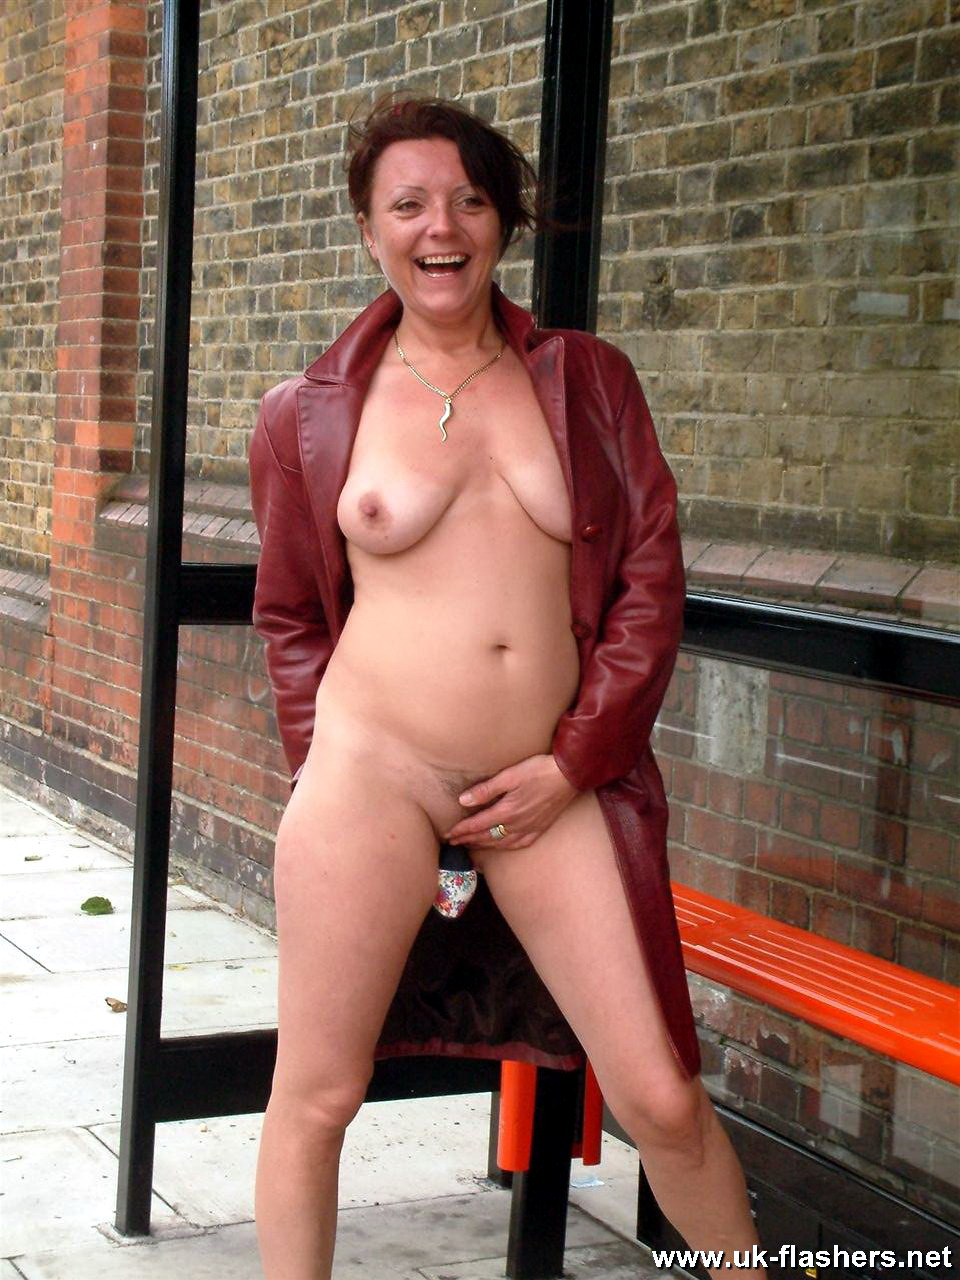 Naked mature uk women